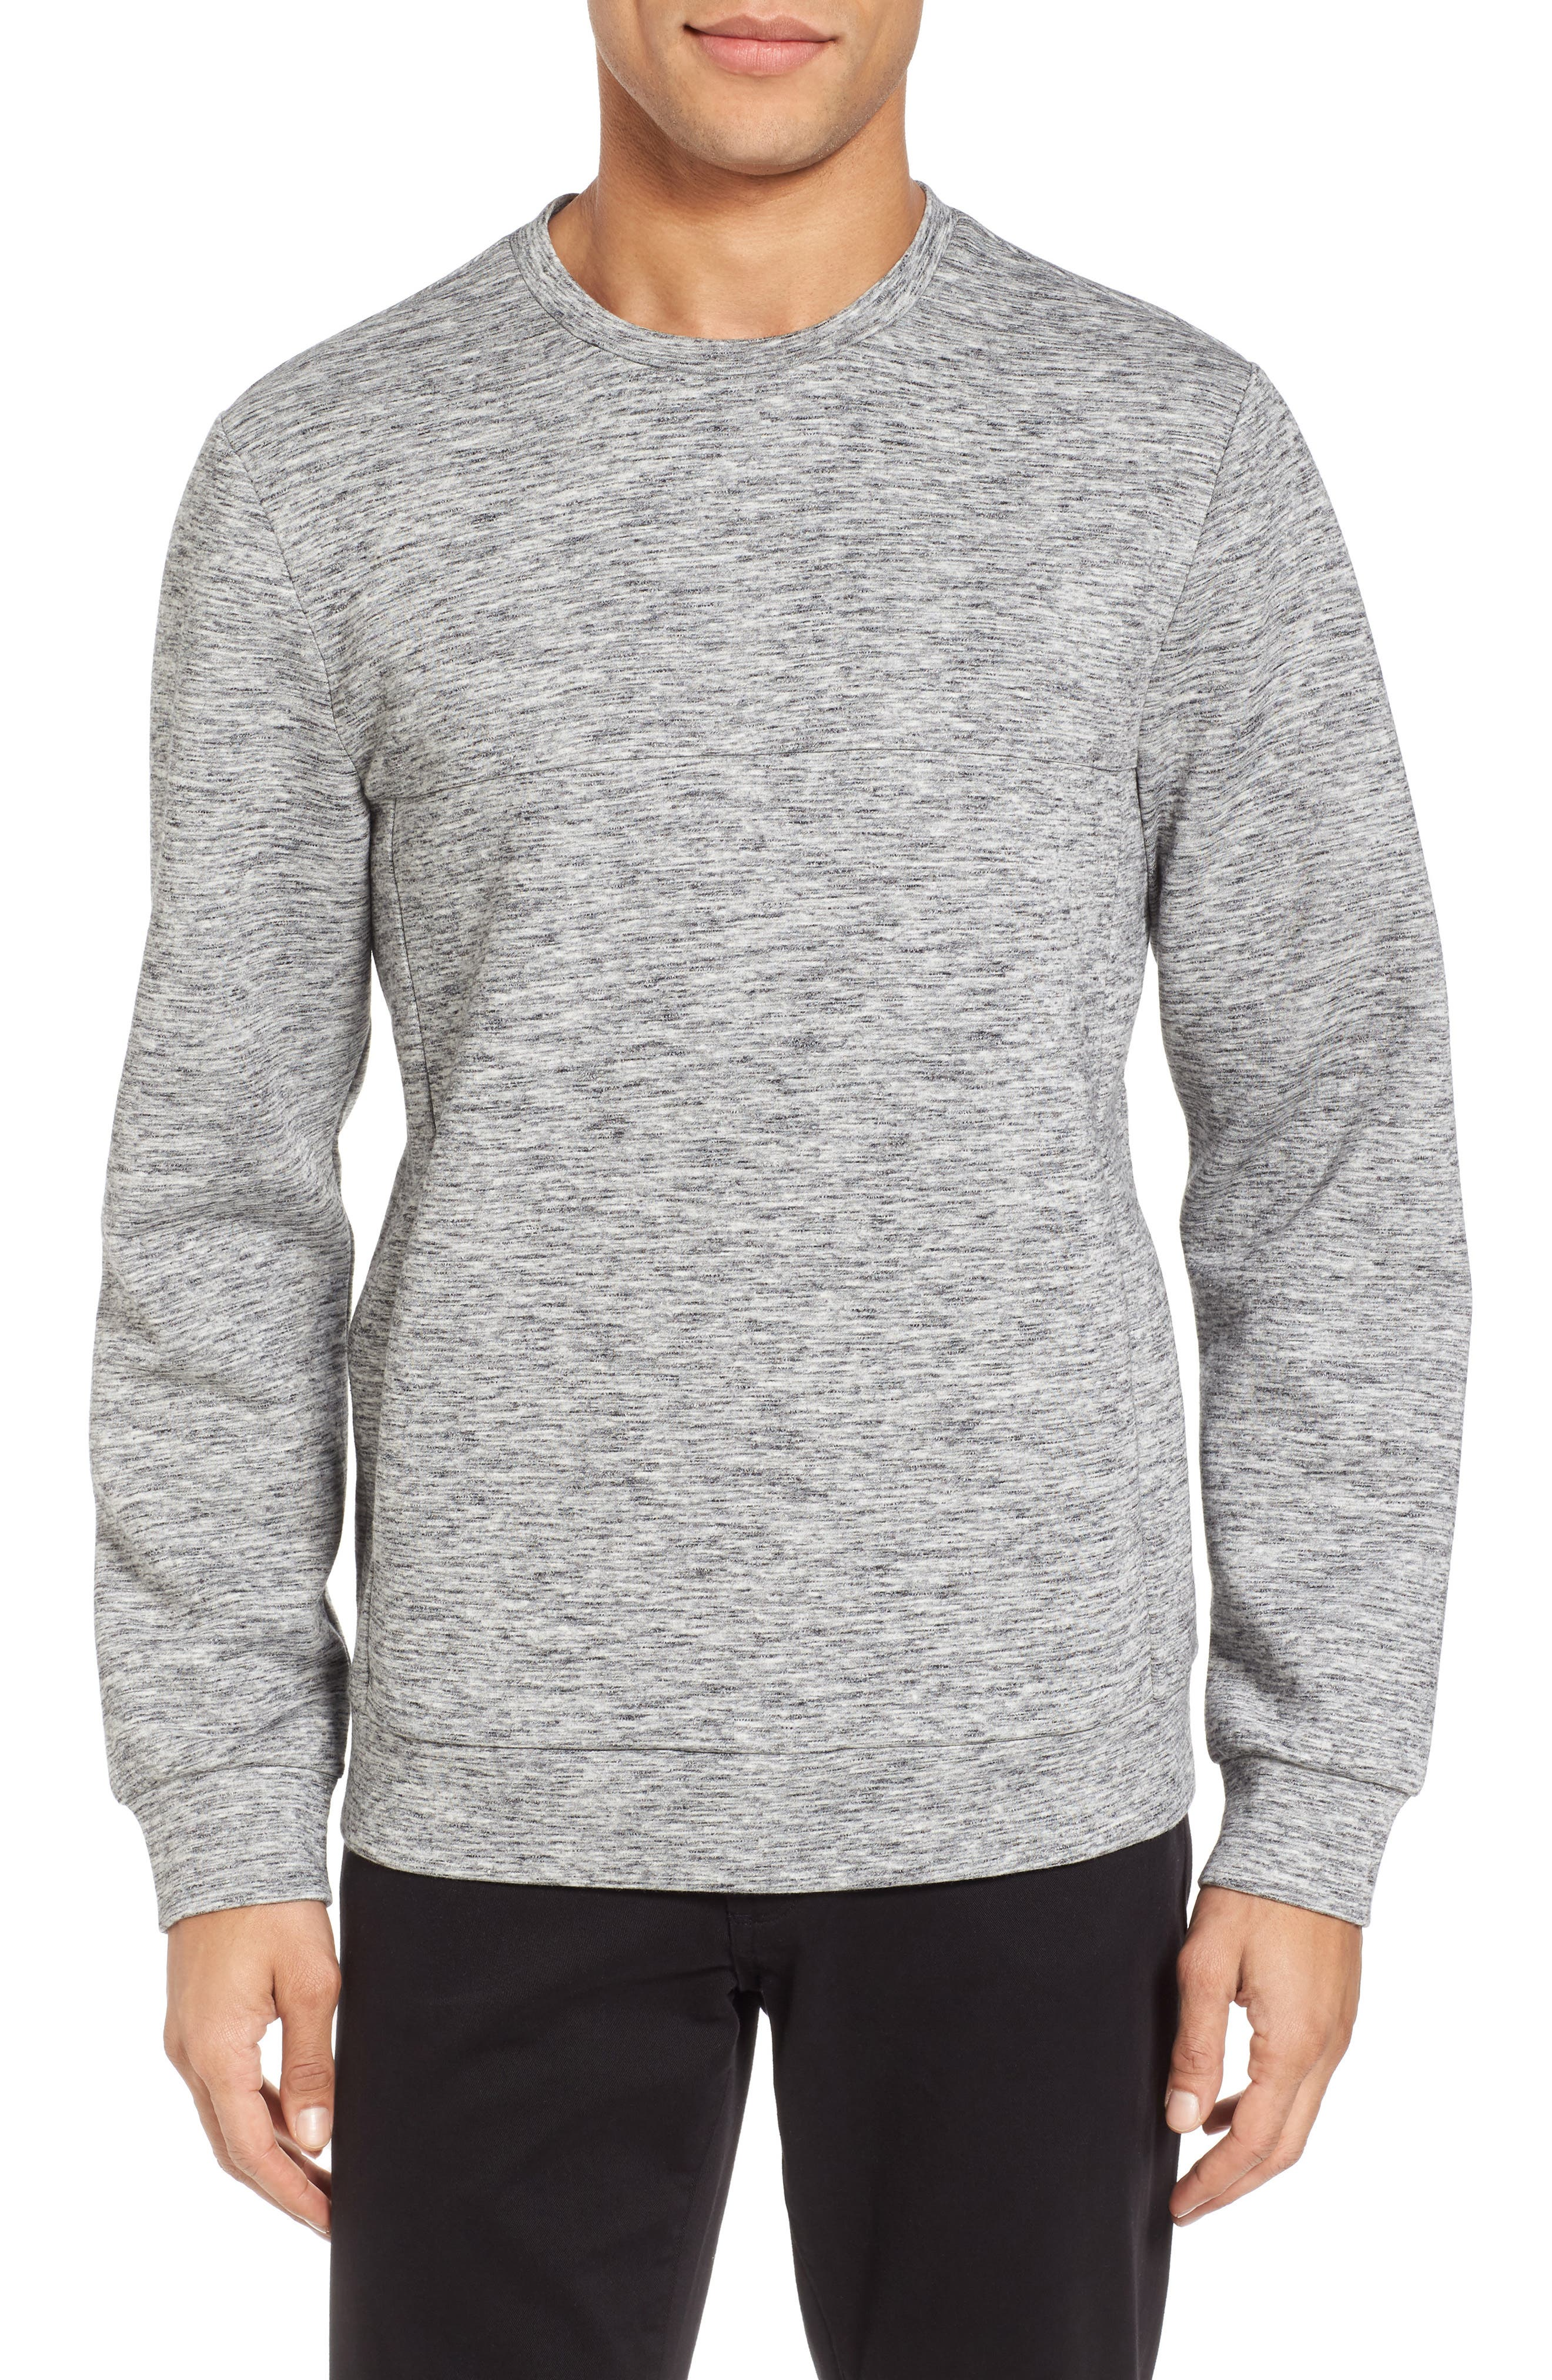 Space Dyed Sweatshirt,                         Main,                         color, 030